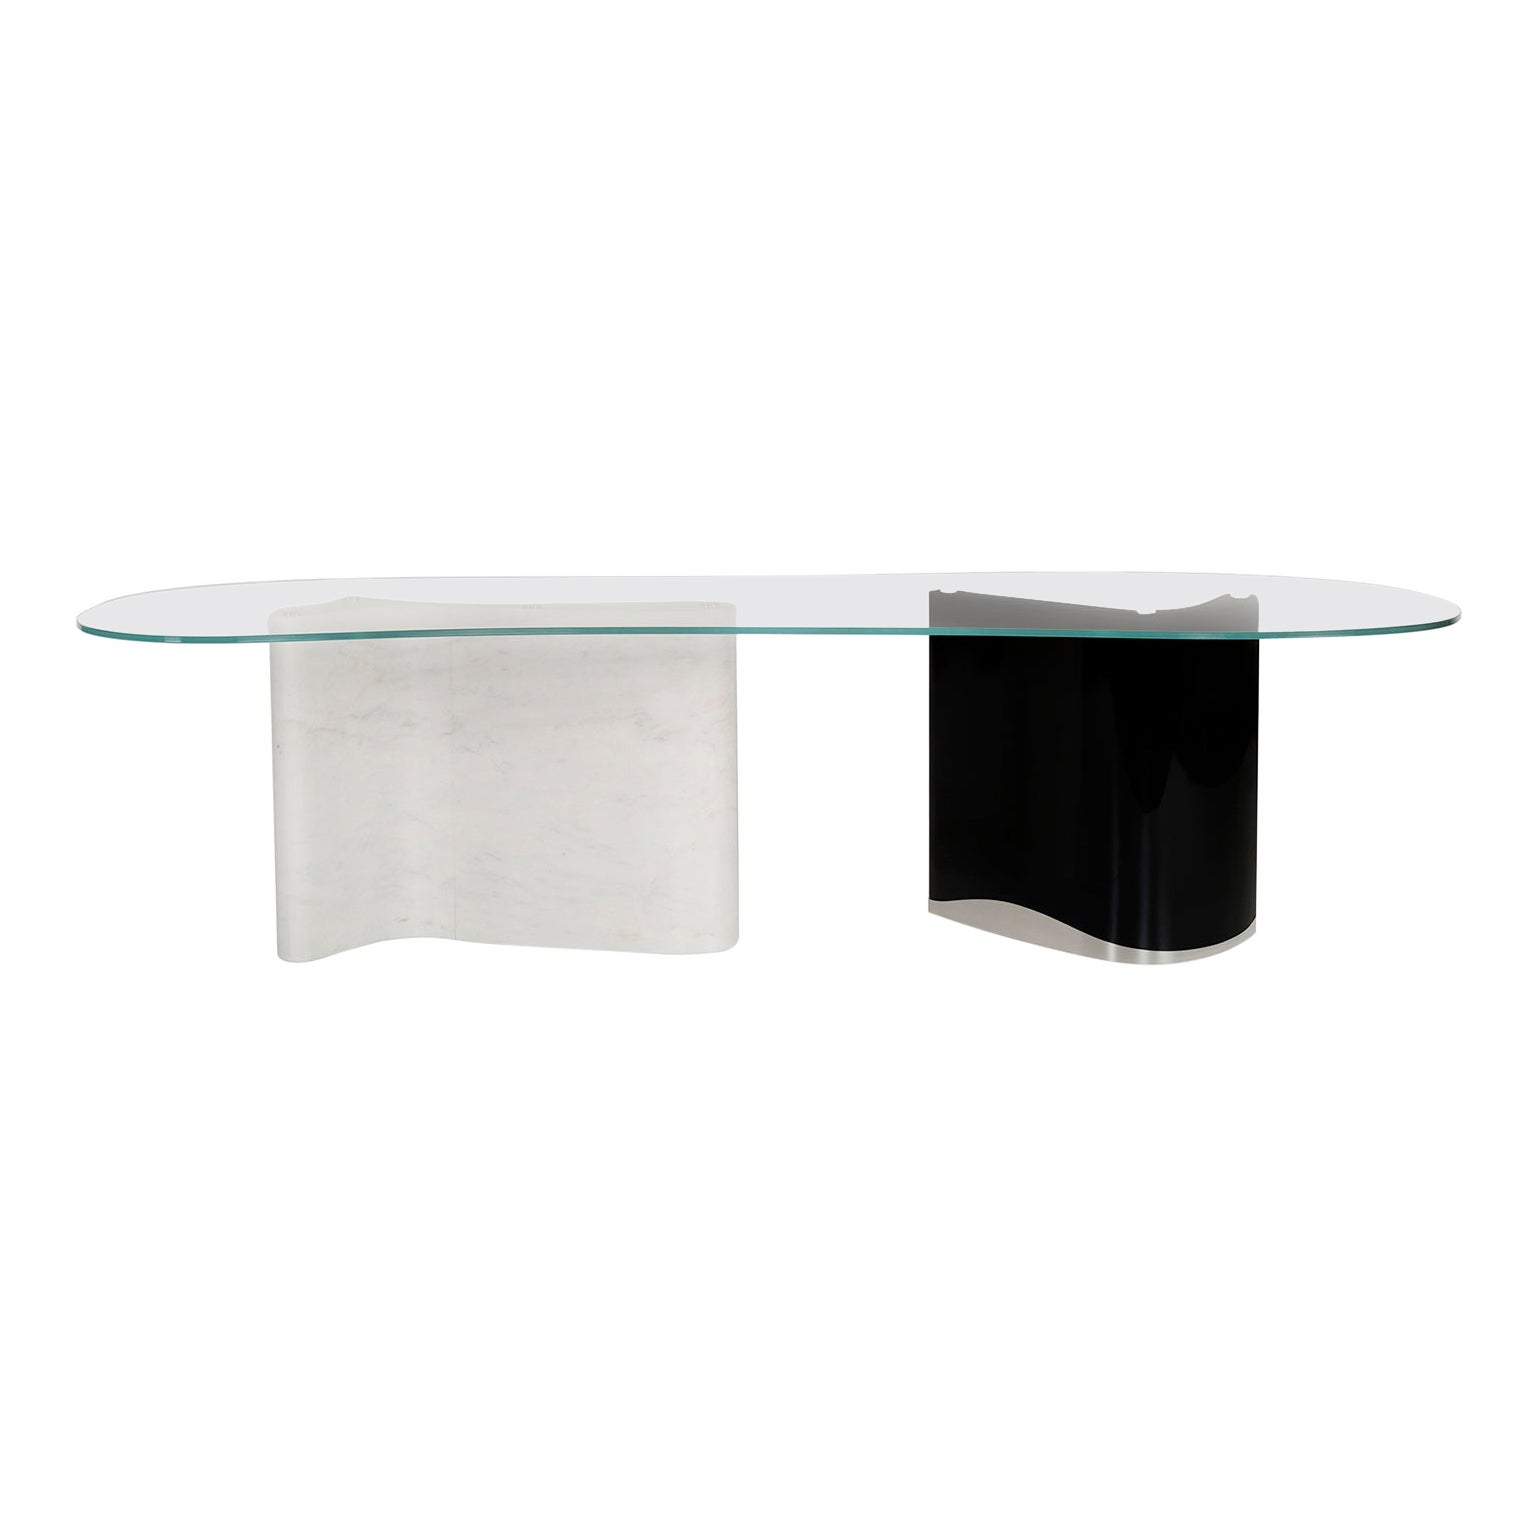 Windy 10-Seat Dining Table Glass Top Calacatta Bianco Stainless Black Lacquered